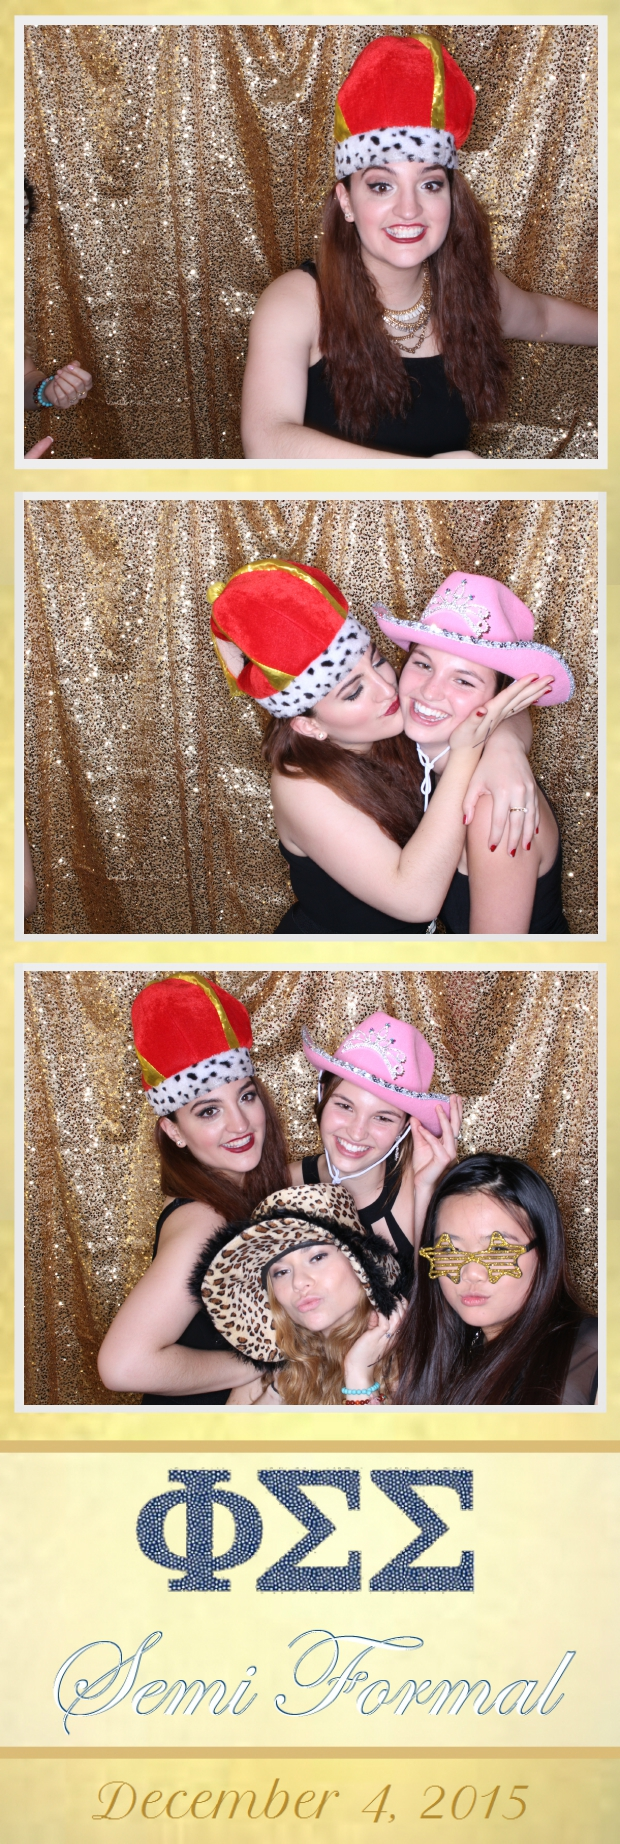 Guest House Events Photo Booth Phi Sigma Sigma Semi Formal (63).jpg